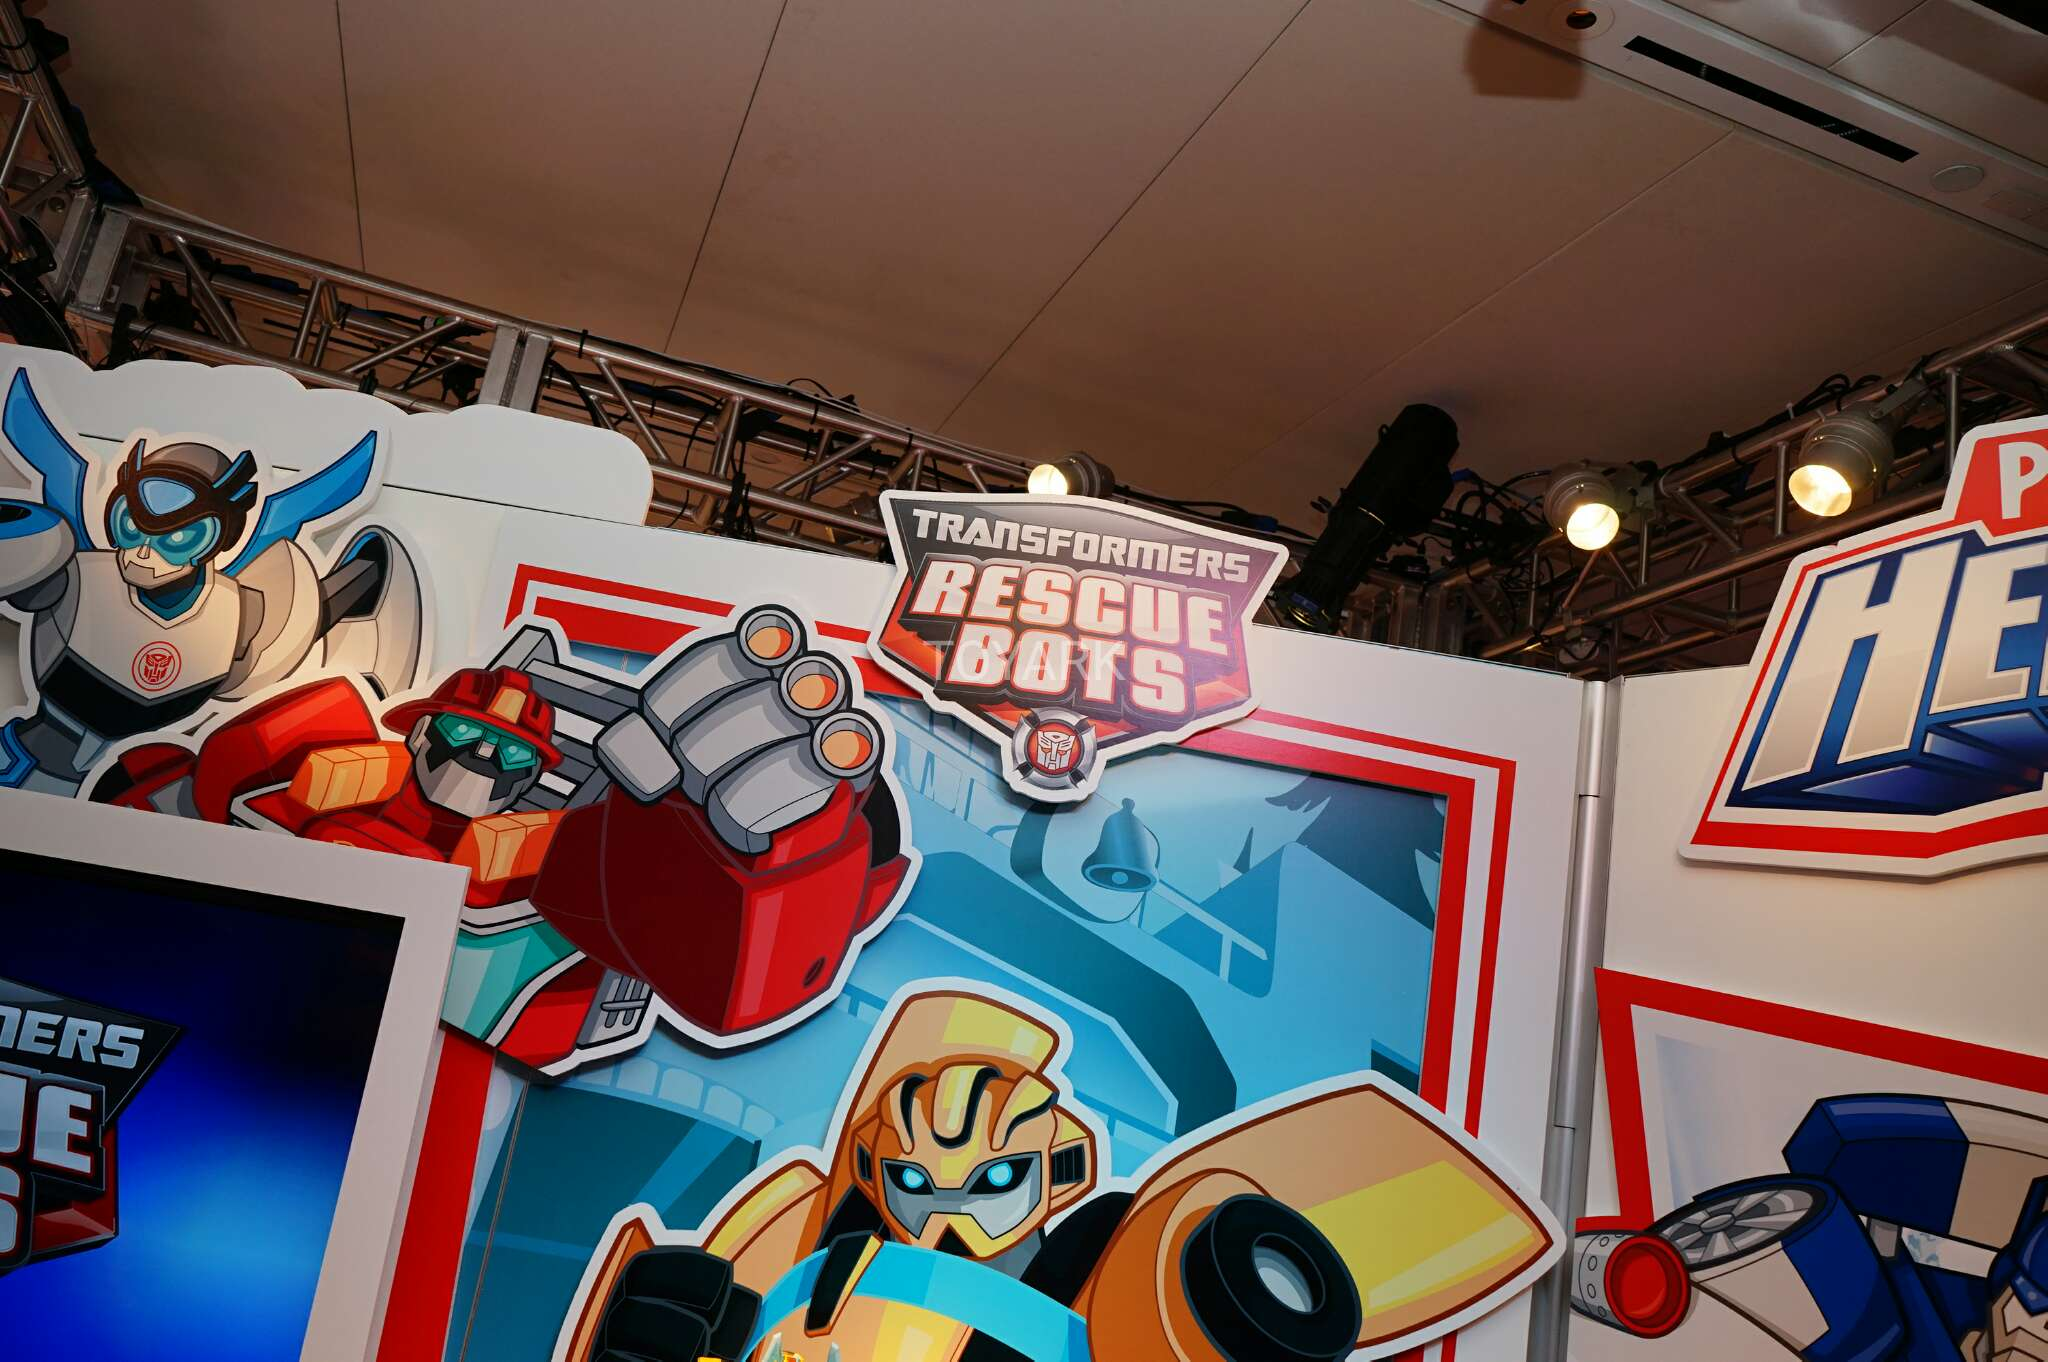 fair rescue bots display images